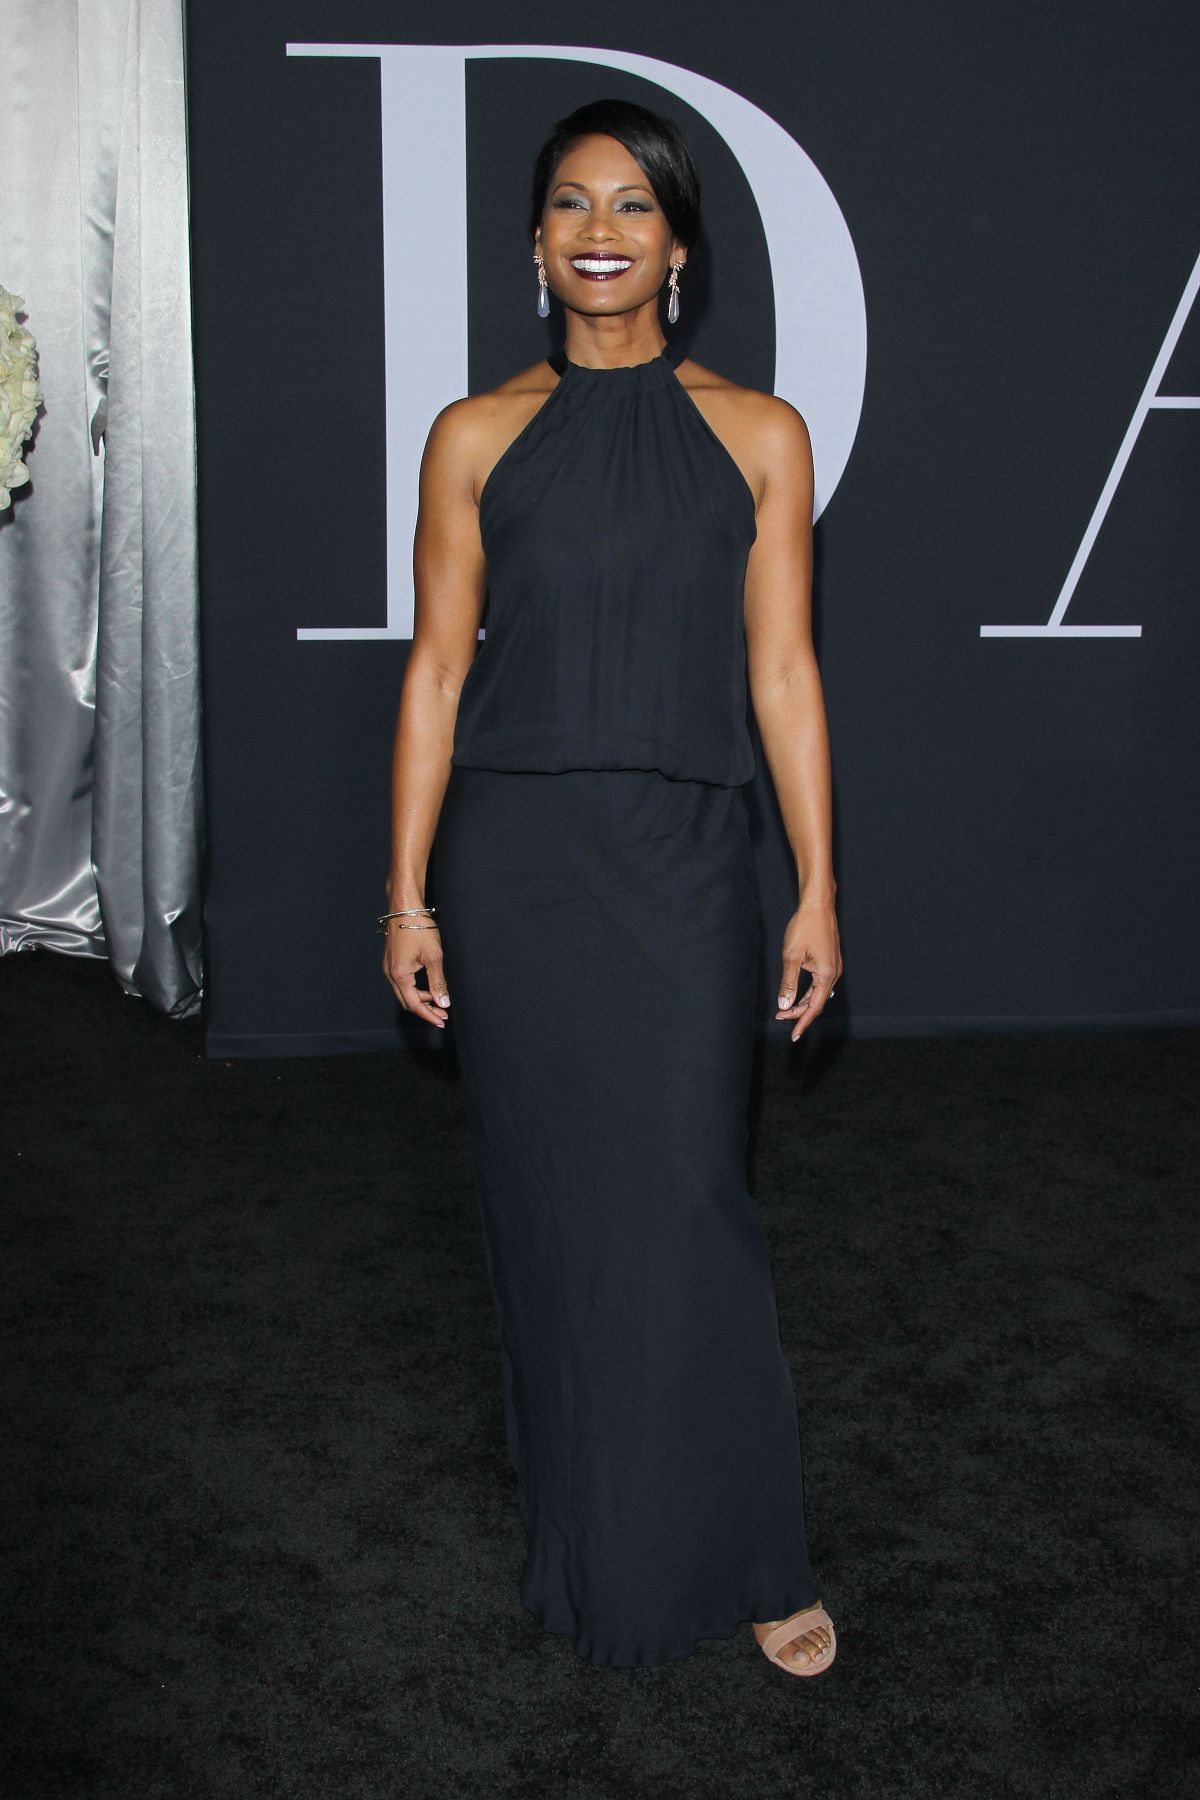 ROBIN LEE at 'Fifty Shades Darker' Premiere in Los Angeles 02/02/2017